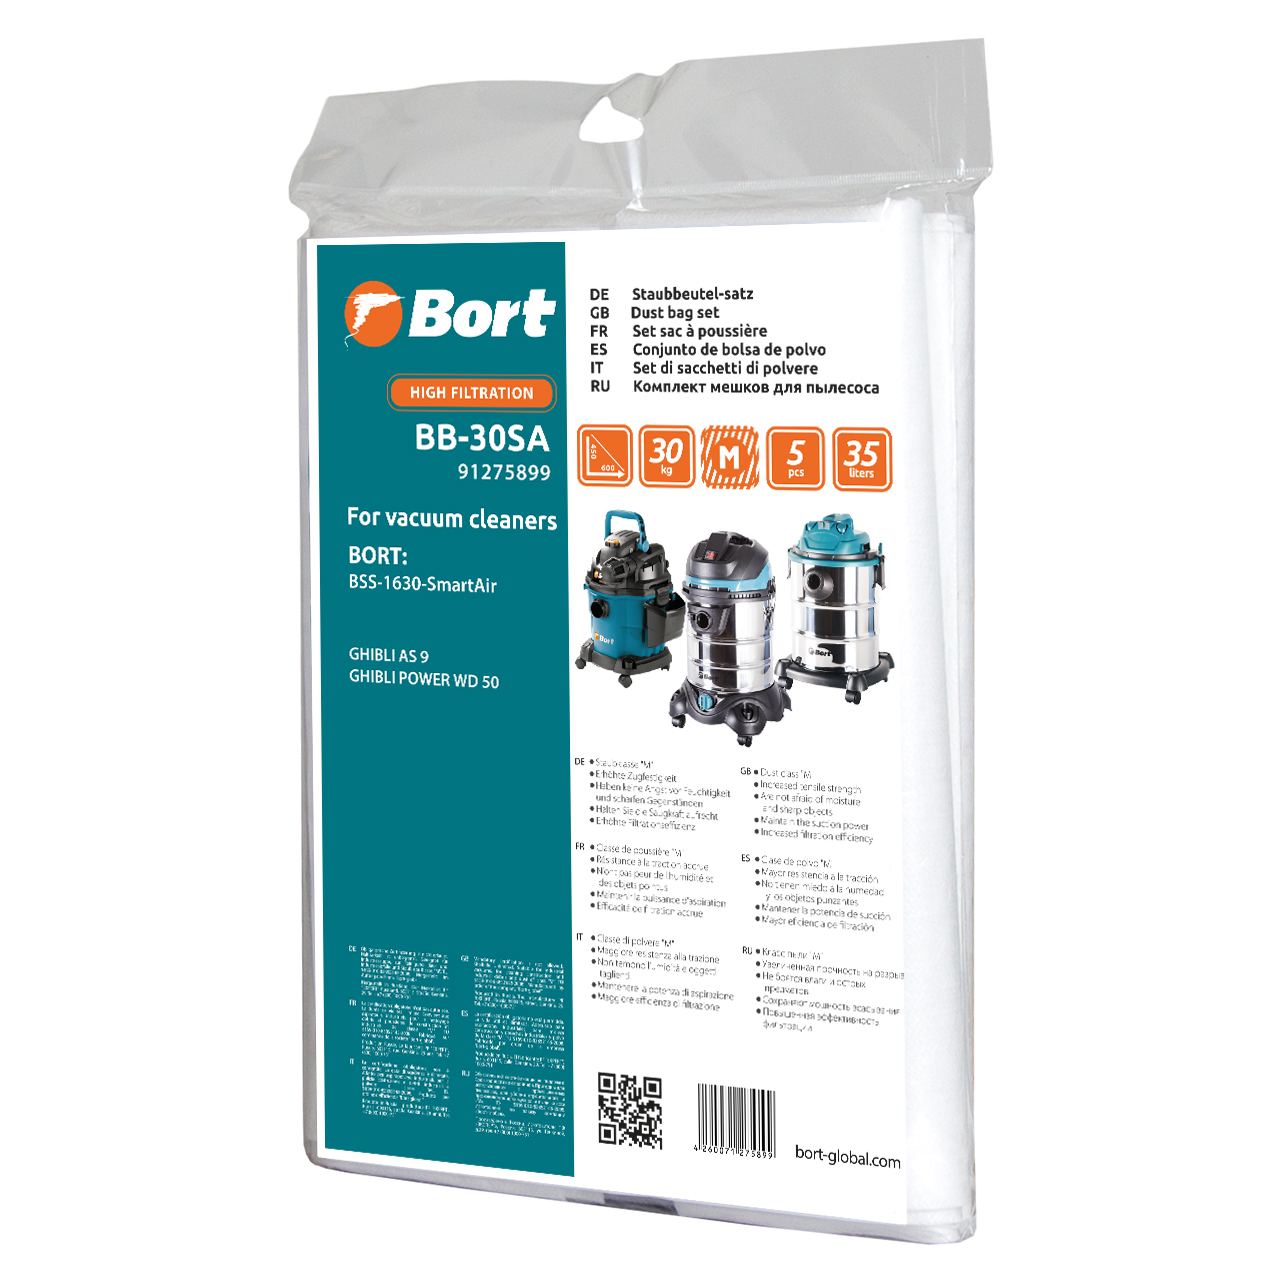 Bags set dust collection for vacuum Cleaner bort BB-30SA (volume 35, 5 pcs, suitable for BSS-1630-SmartAir) стоимость